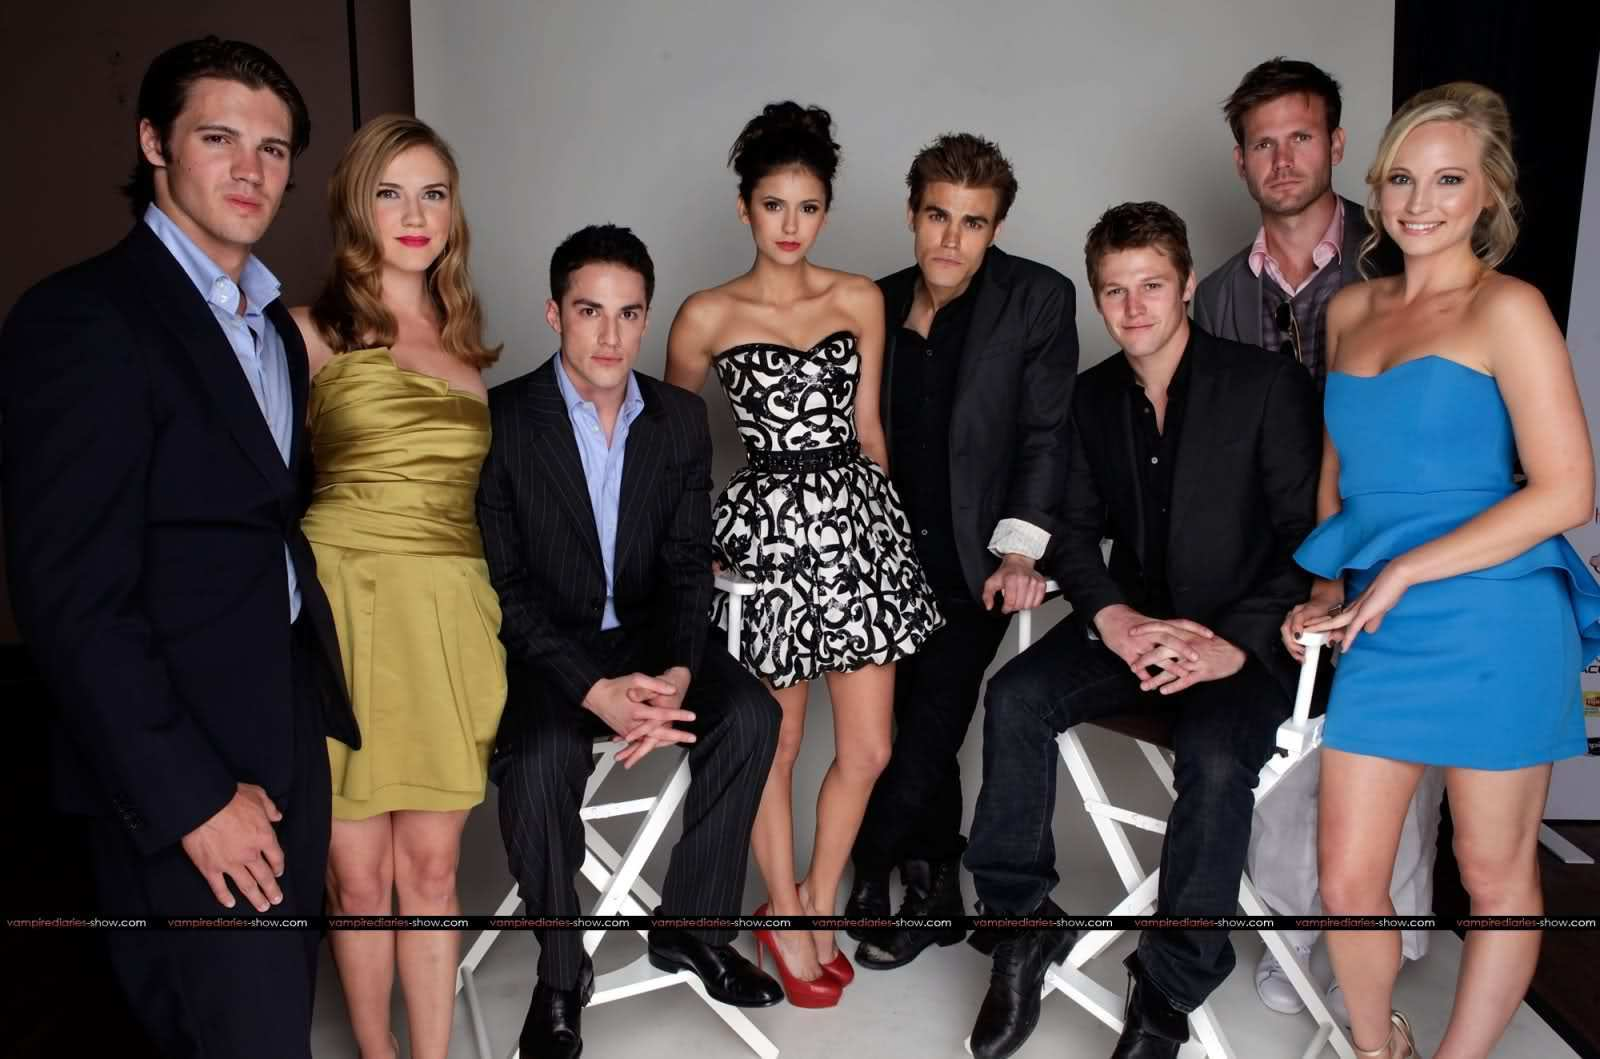 Vampire diaries stars dating in real life